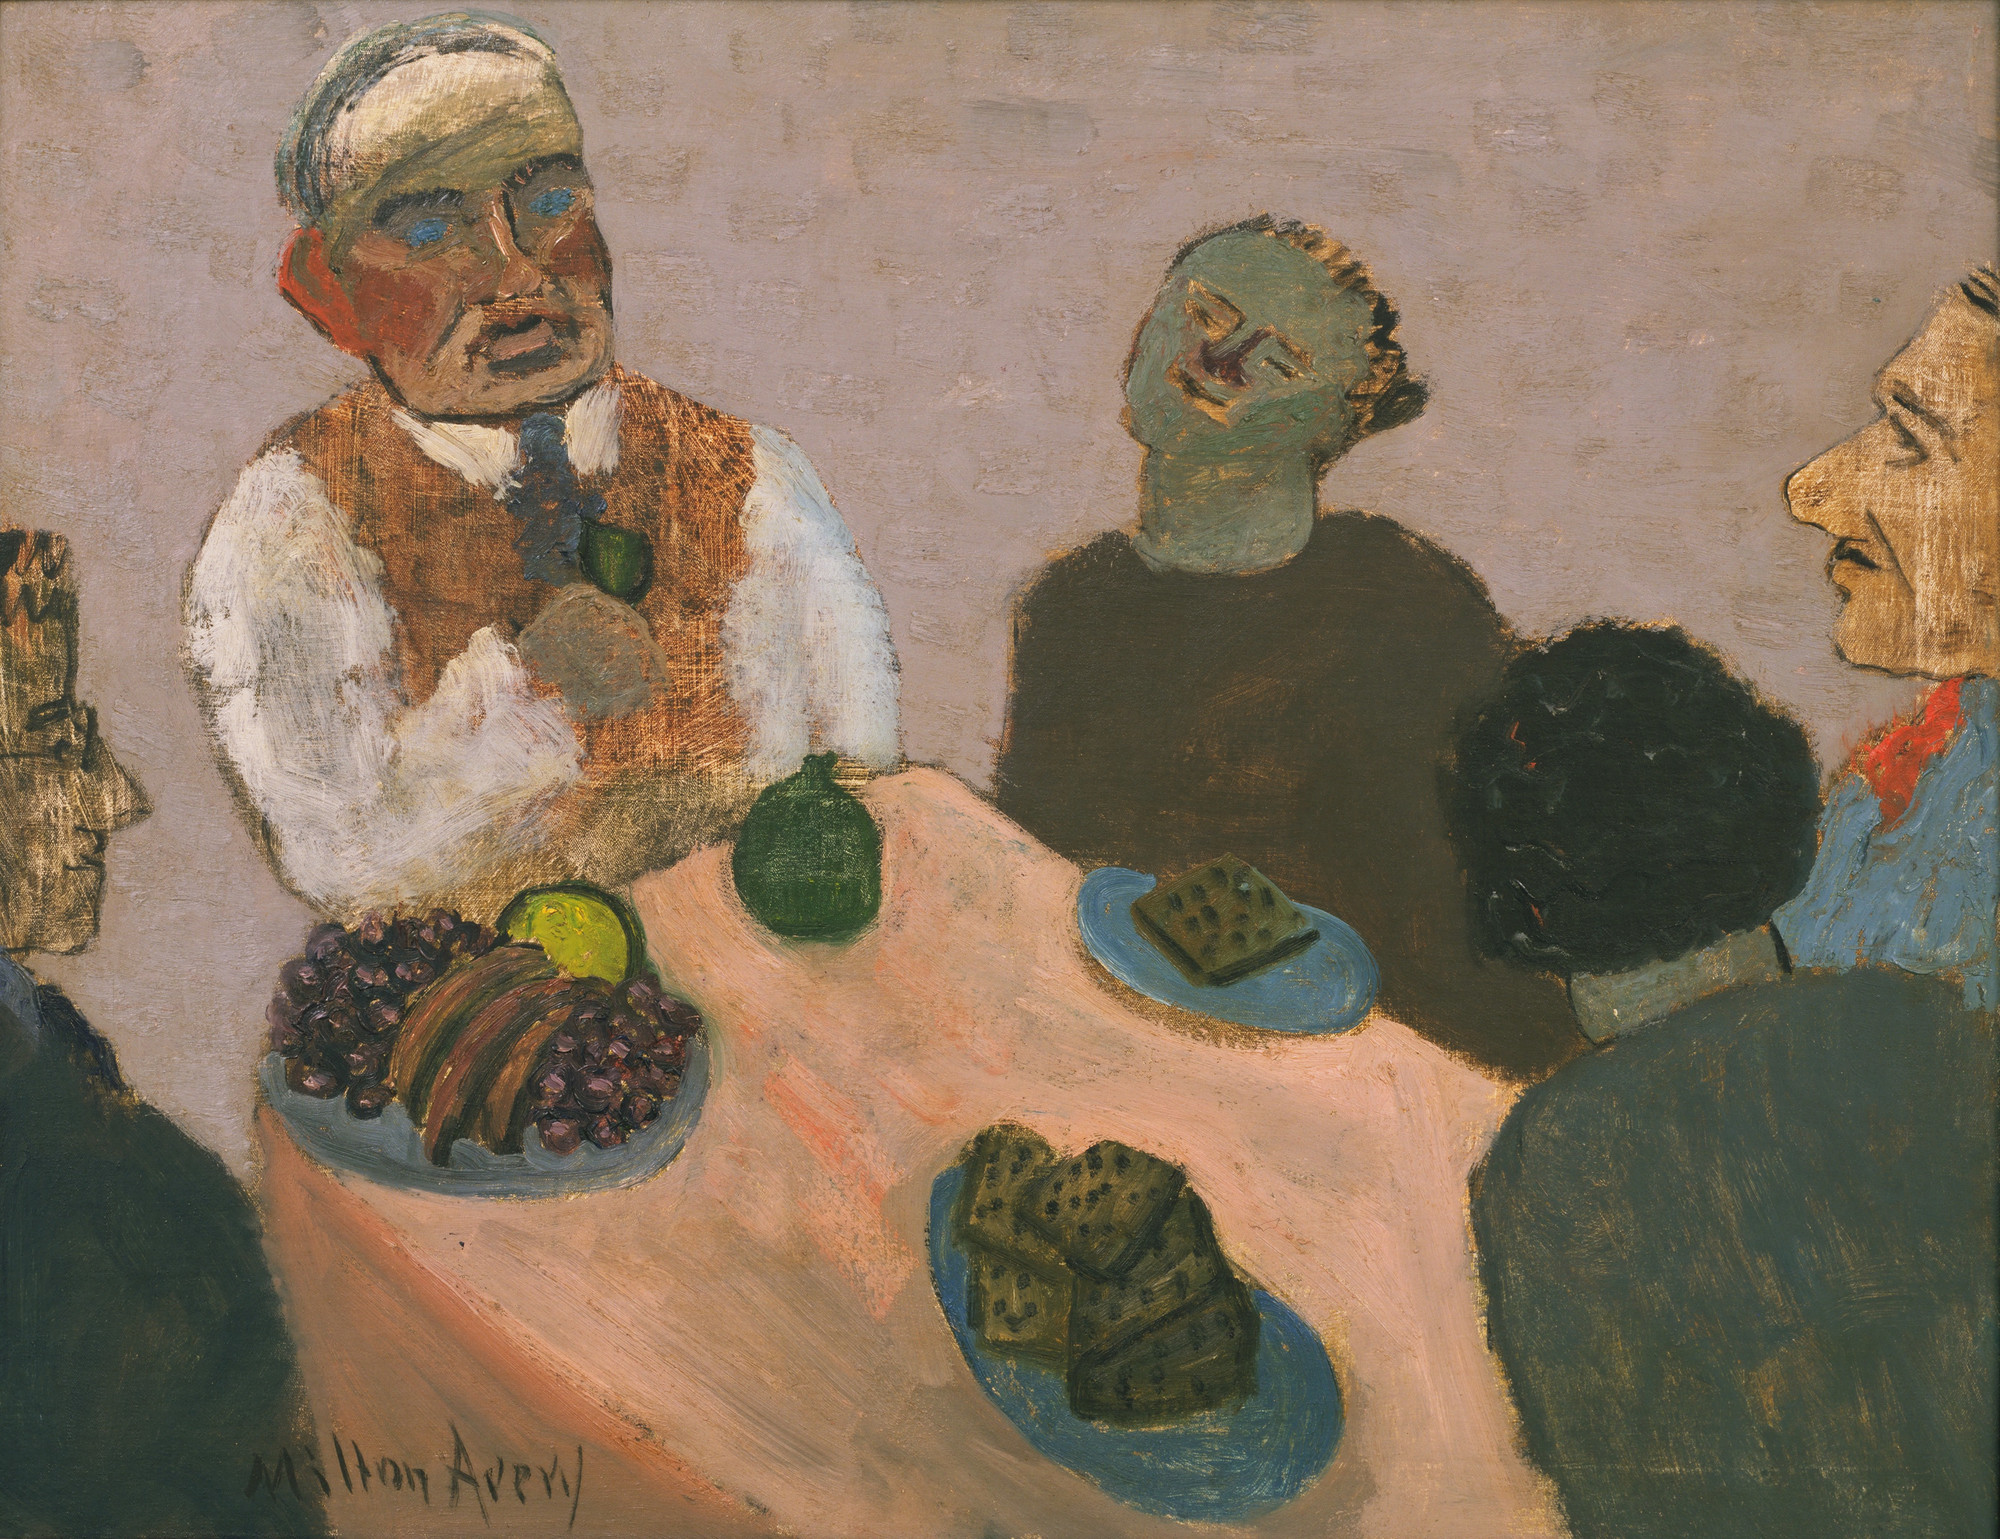 Milton Avery. The Dessert. 1939